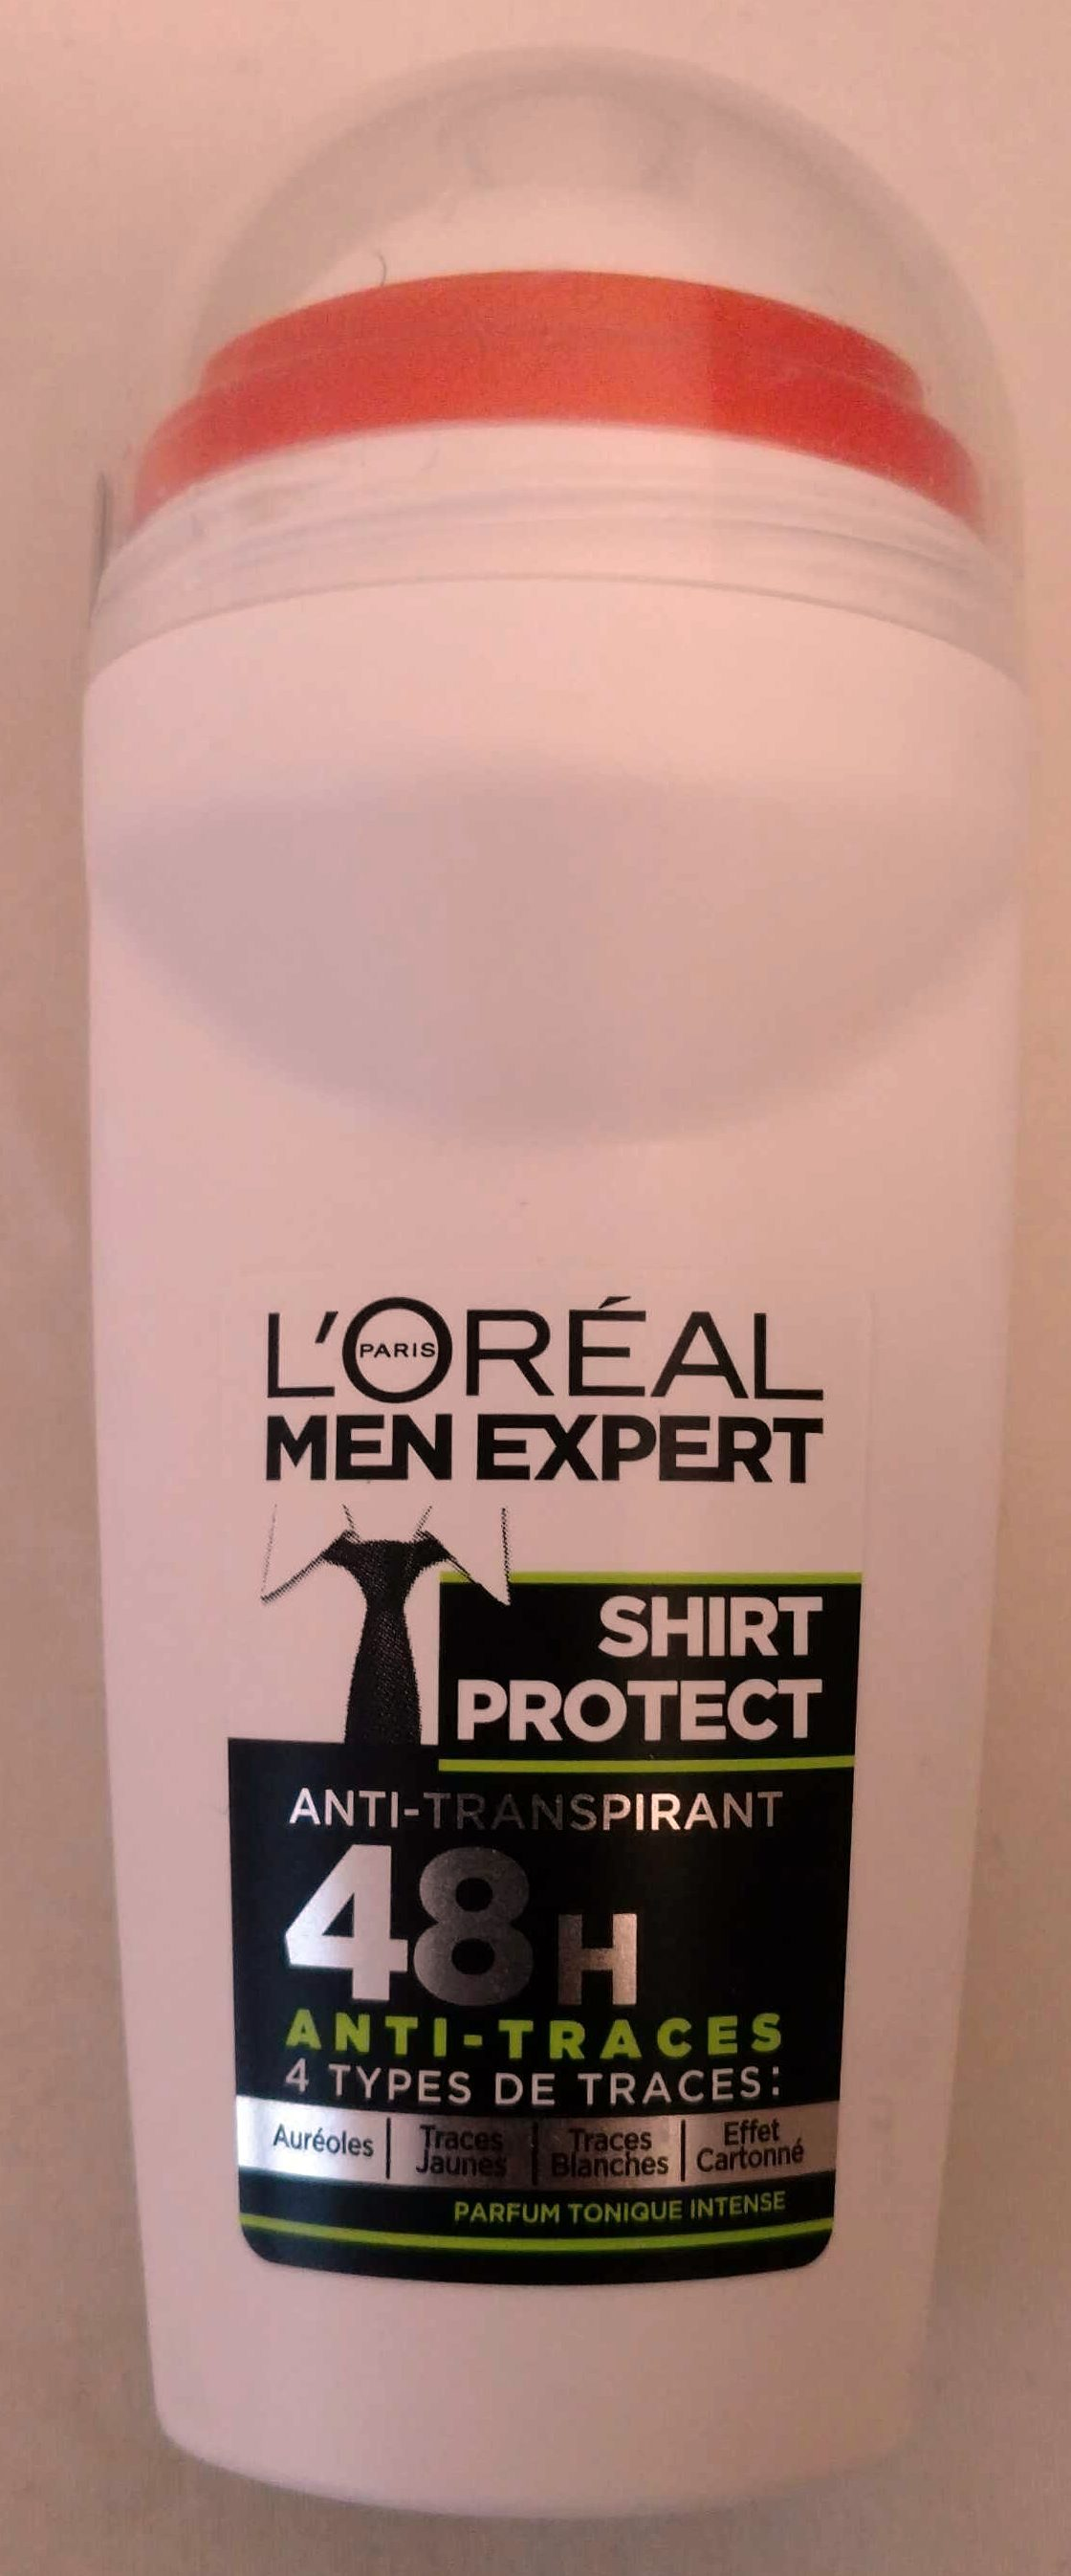 Men expert shirt protect 48h - Produit